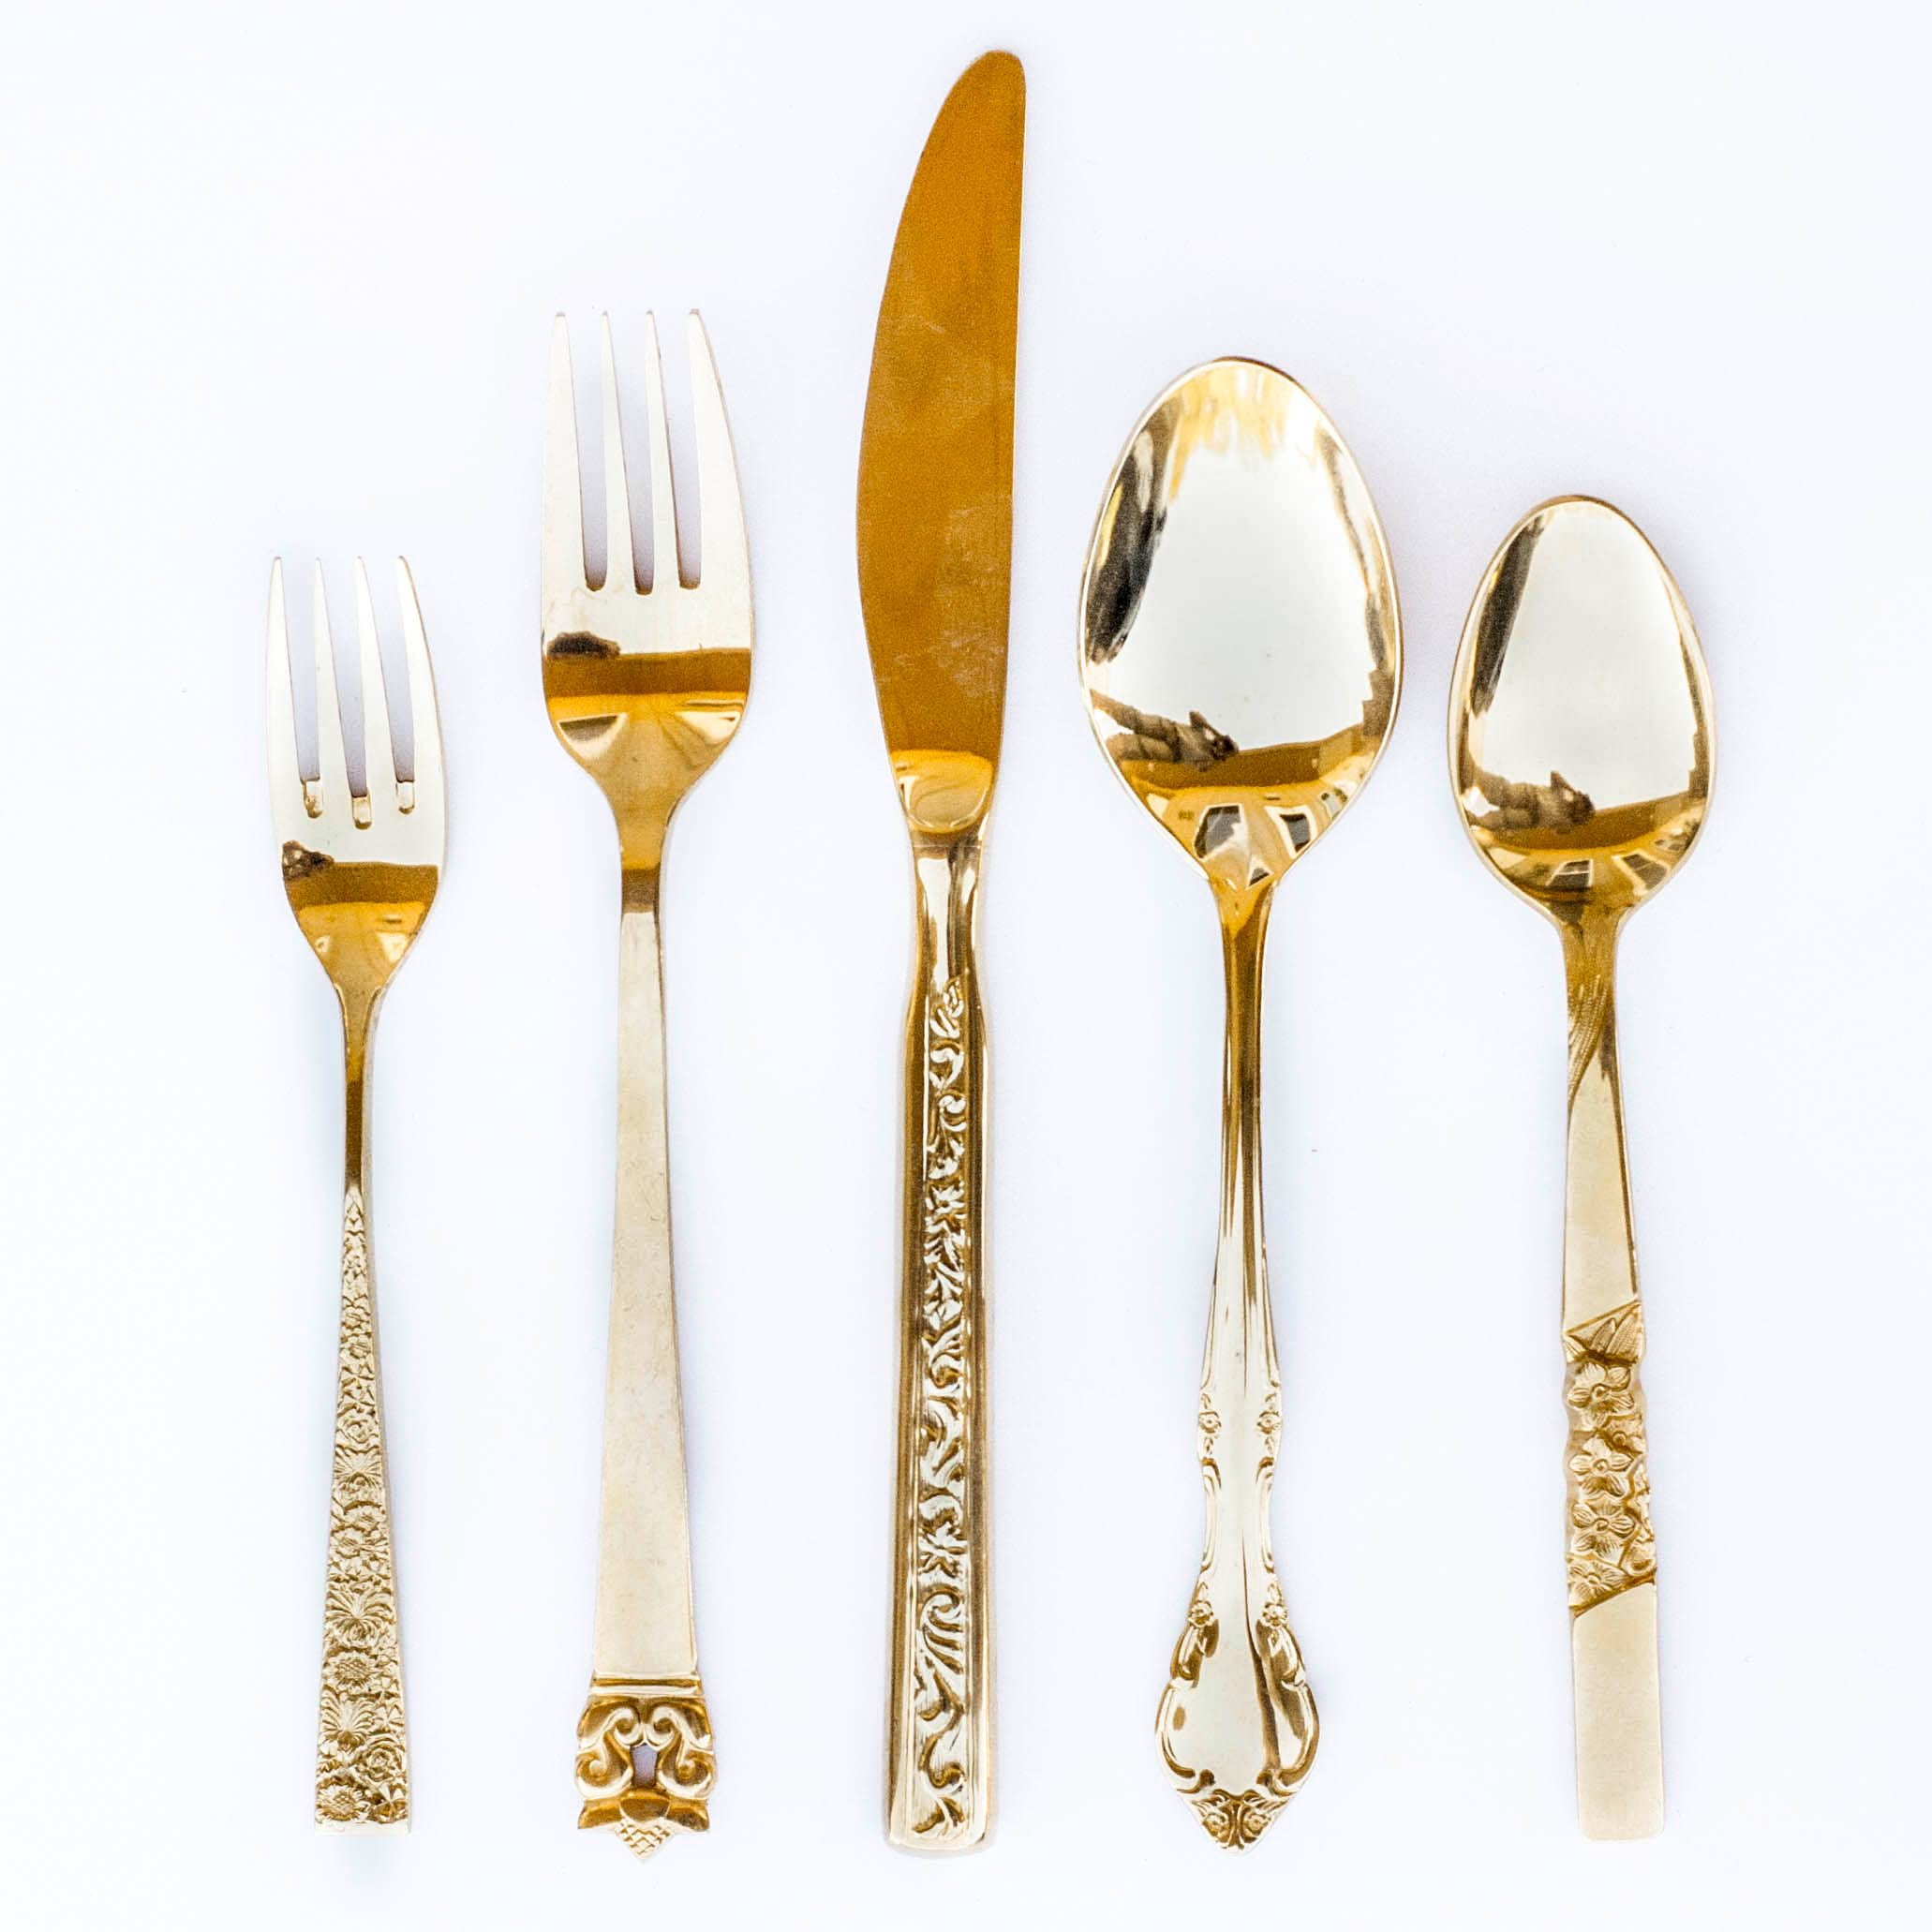 Mismatched Gold Flatware